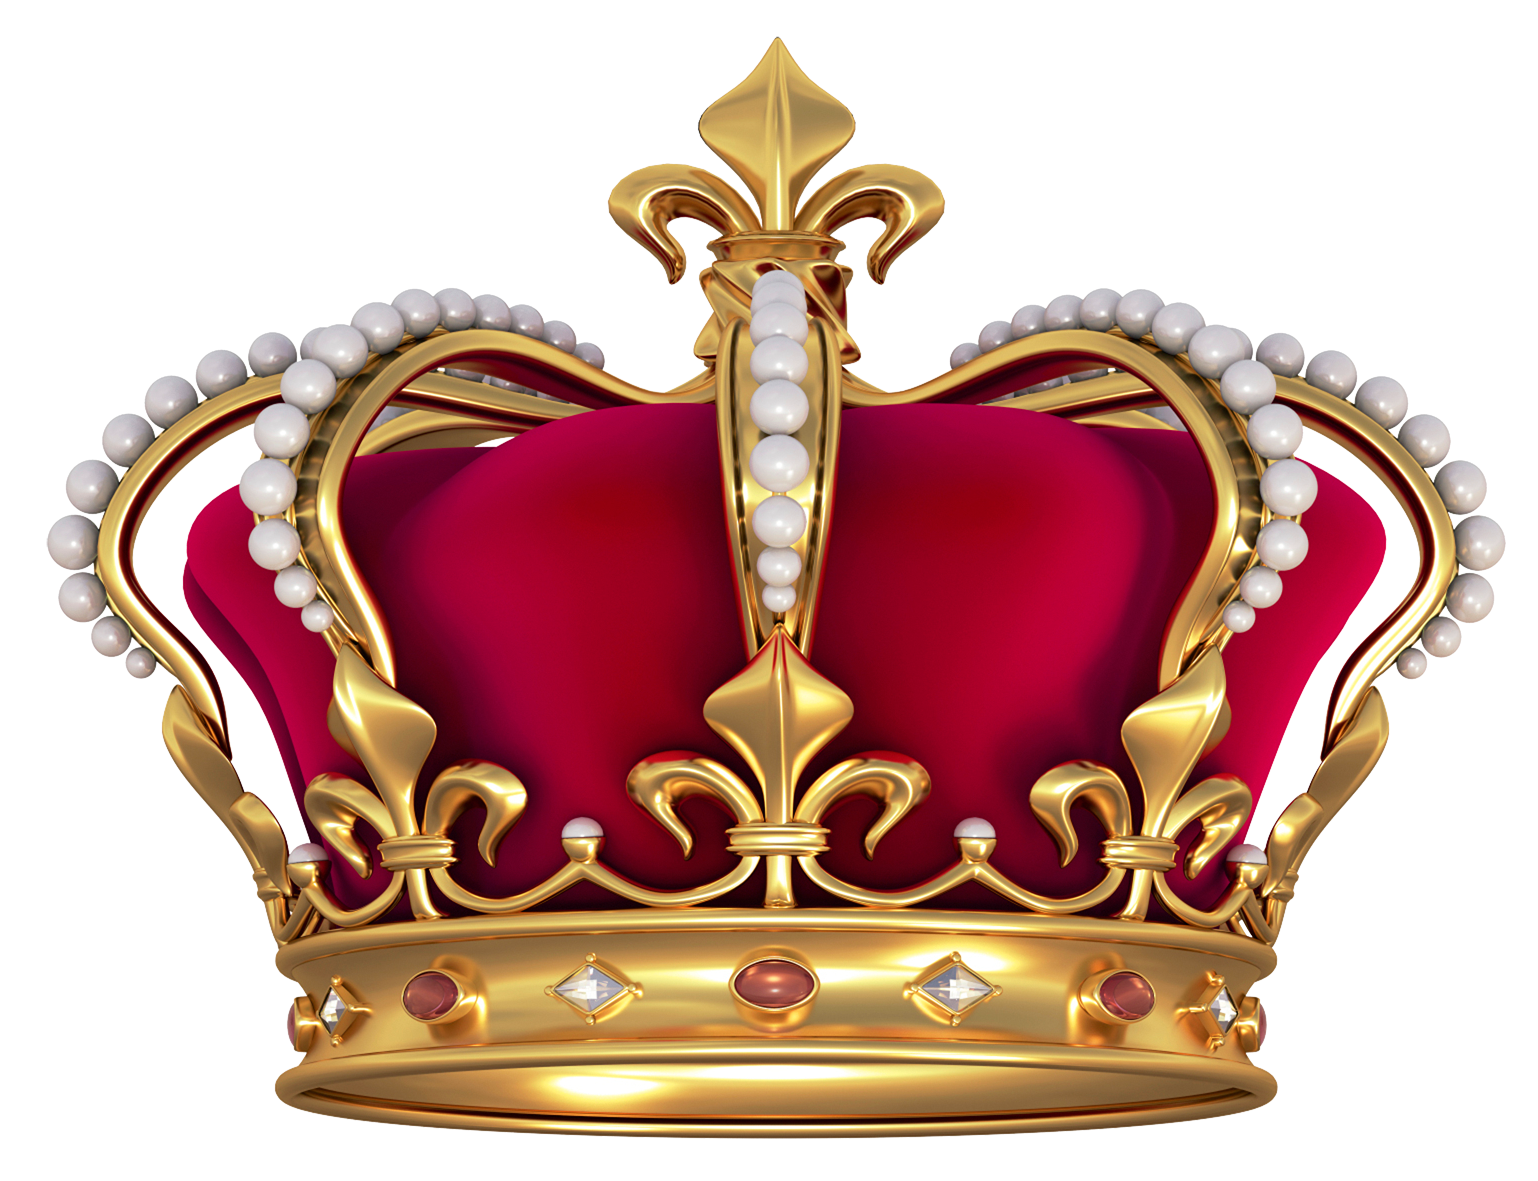 British crown clipart vector freeuse Red Gold Crown with Pearls PNG Clipart Picture | Crafting - Regal ... vector freeuse